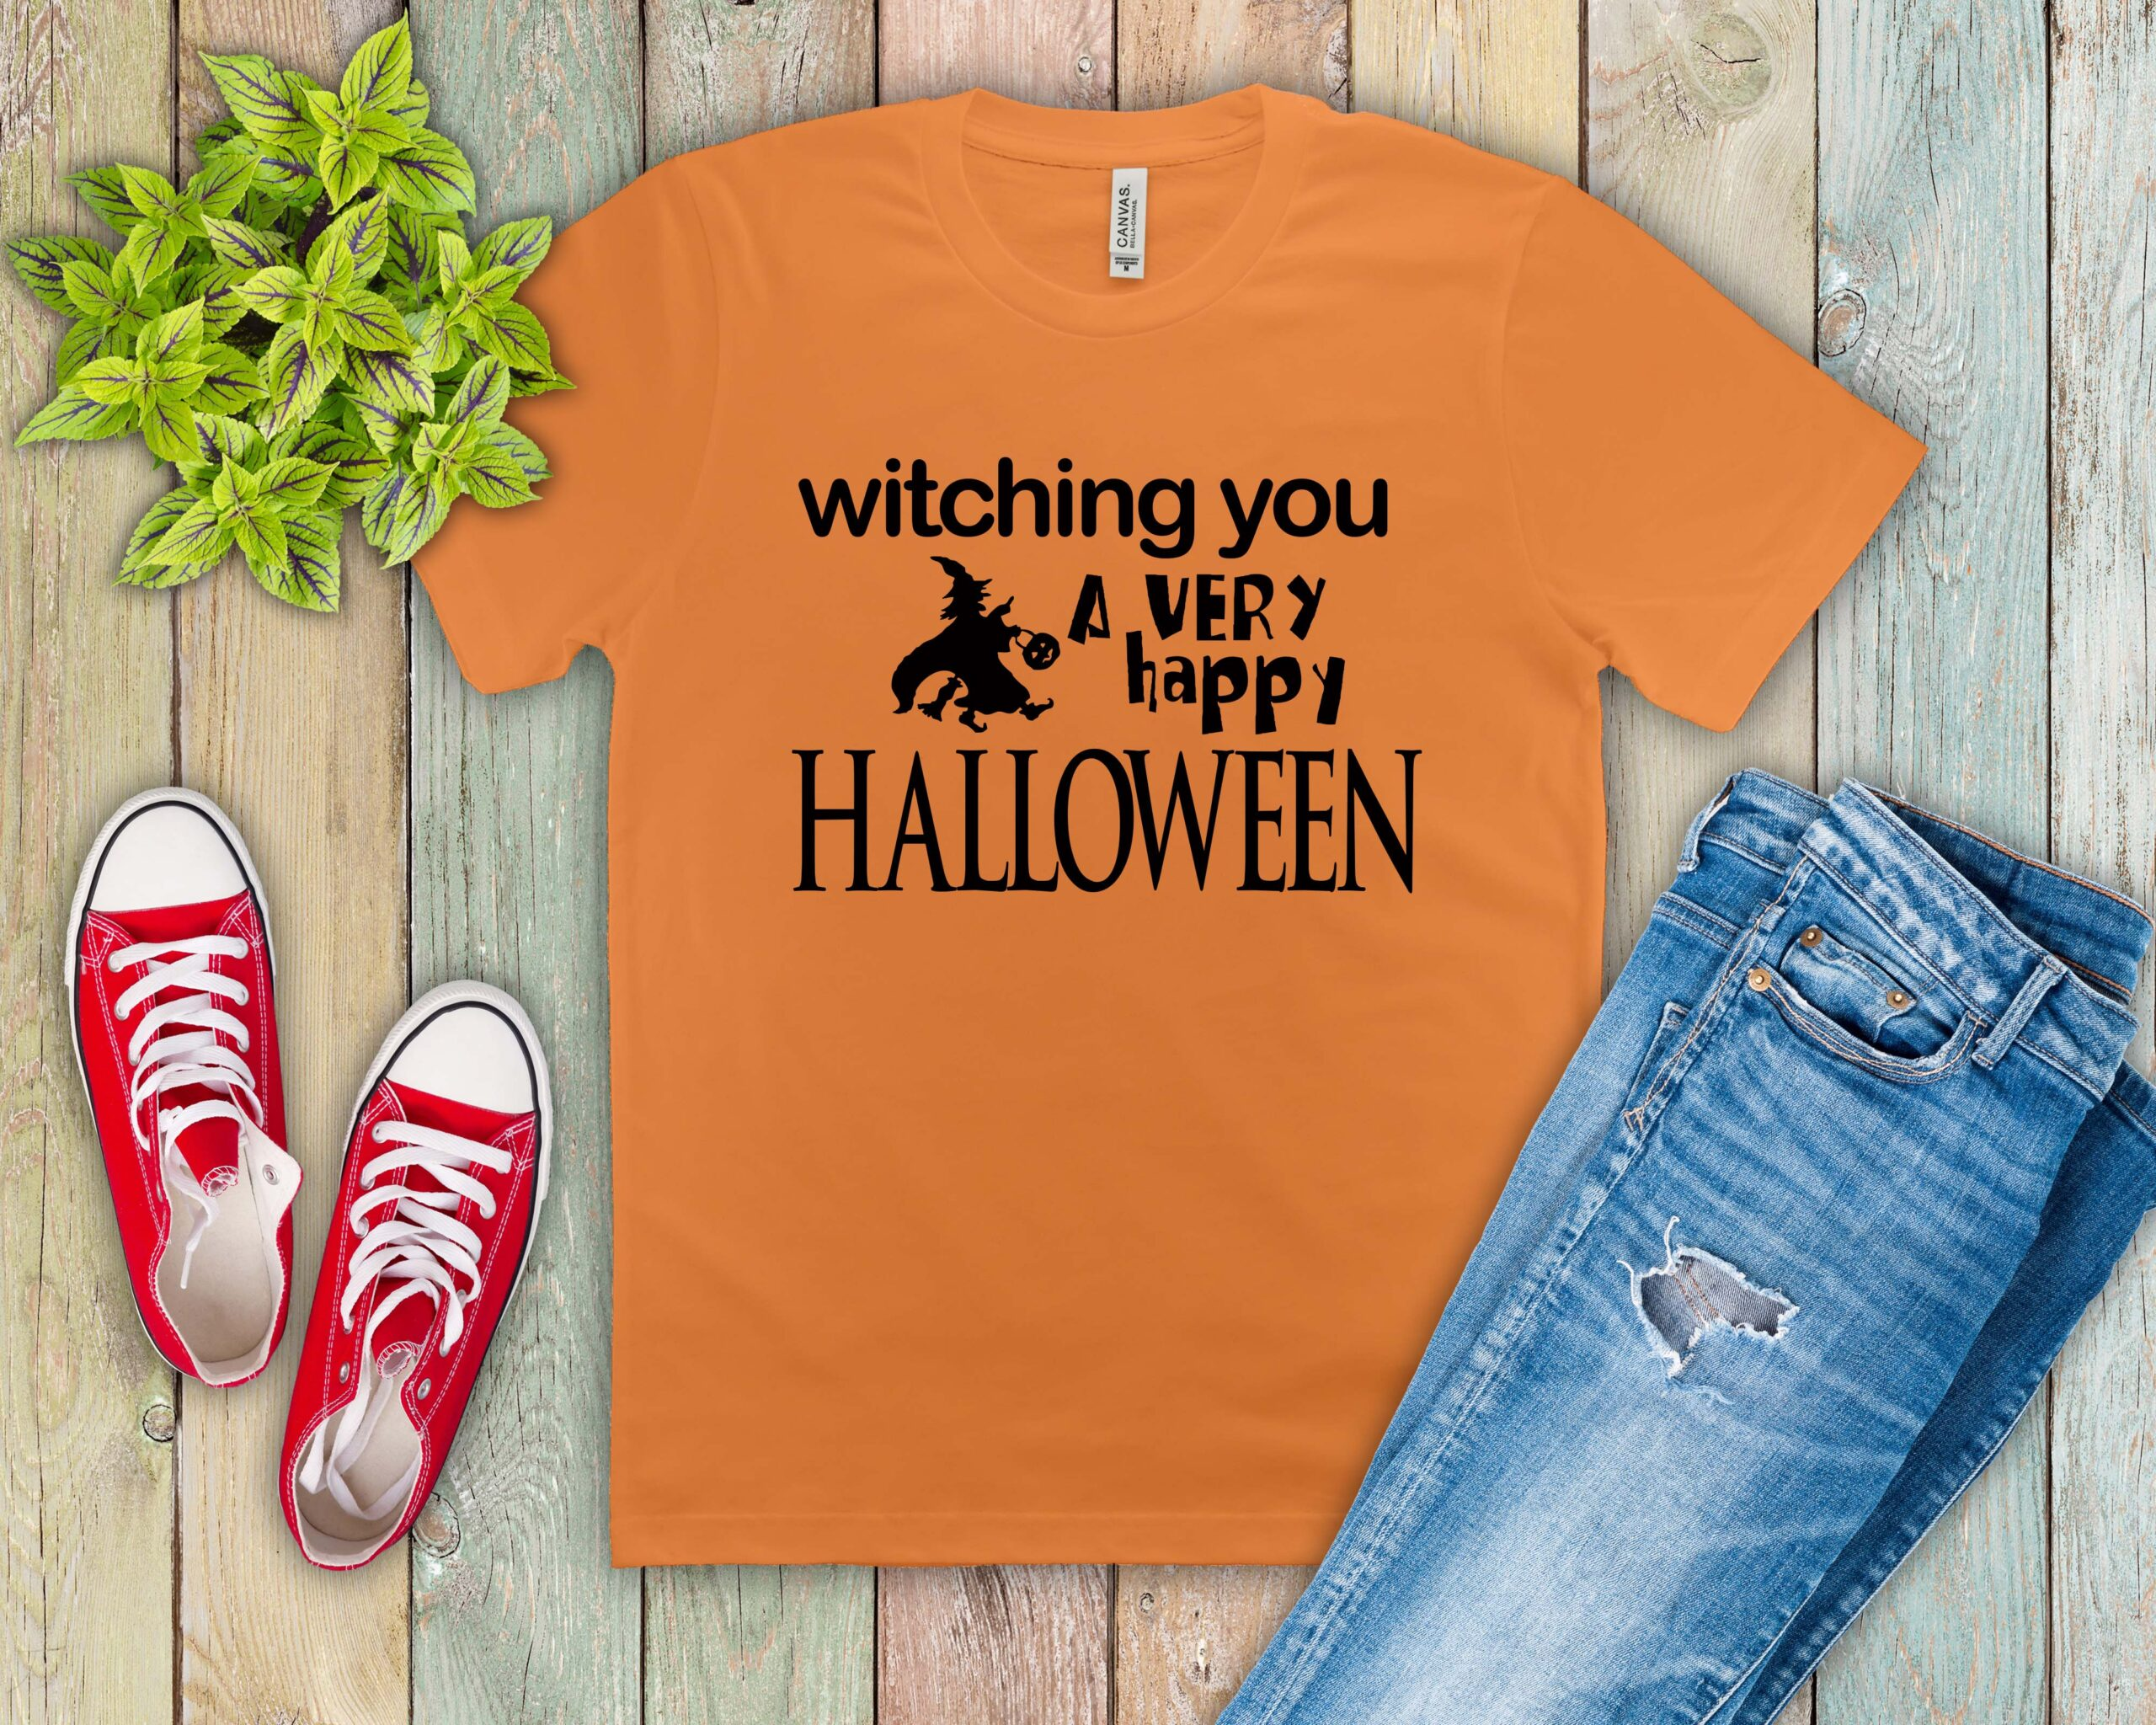 Free Witching You SVG File